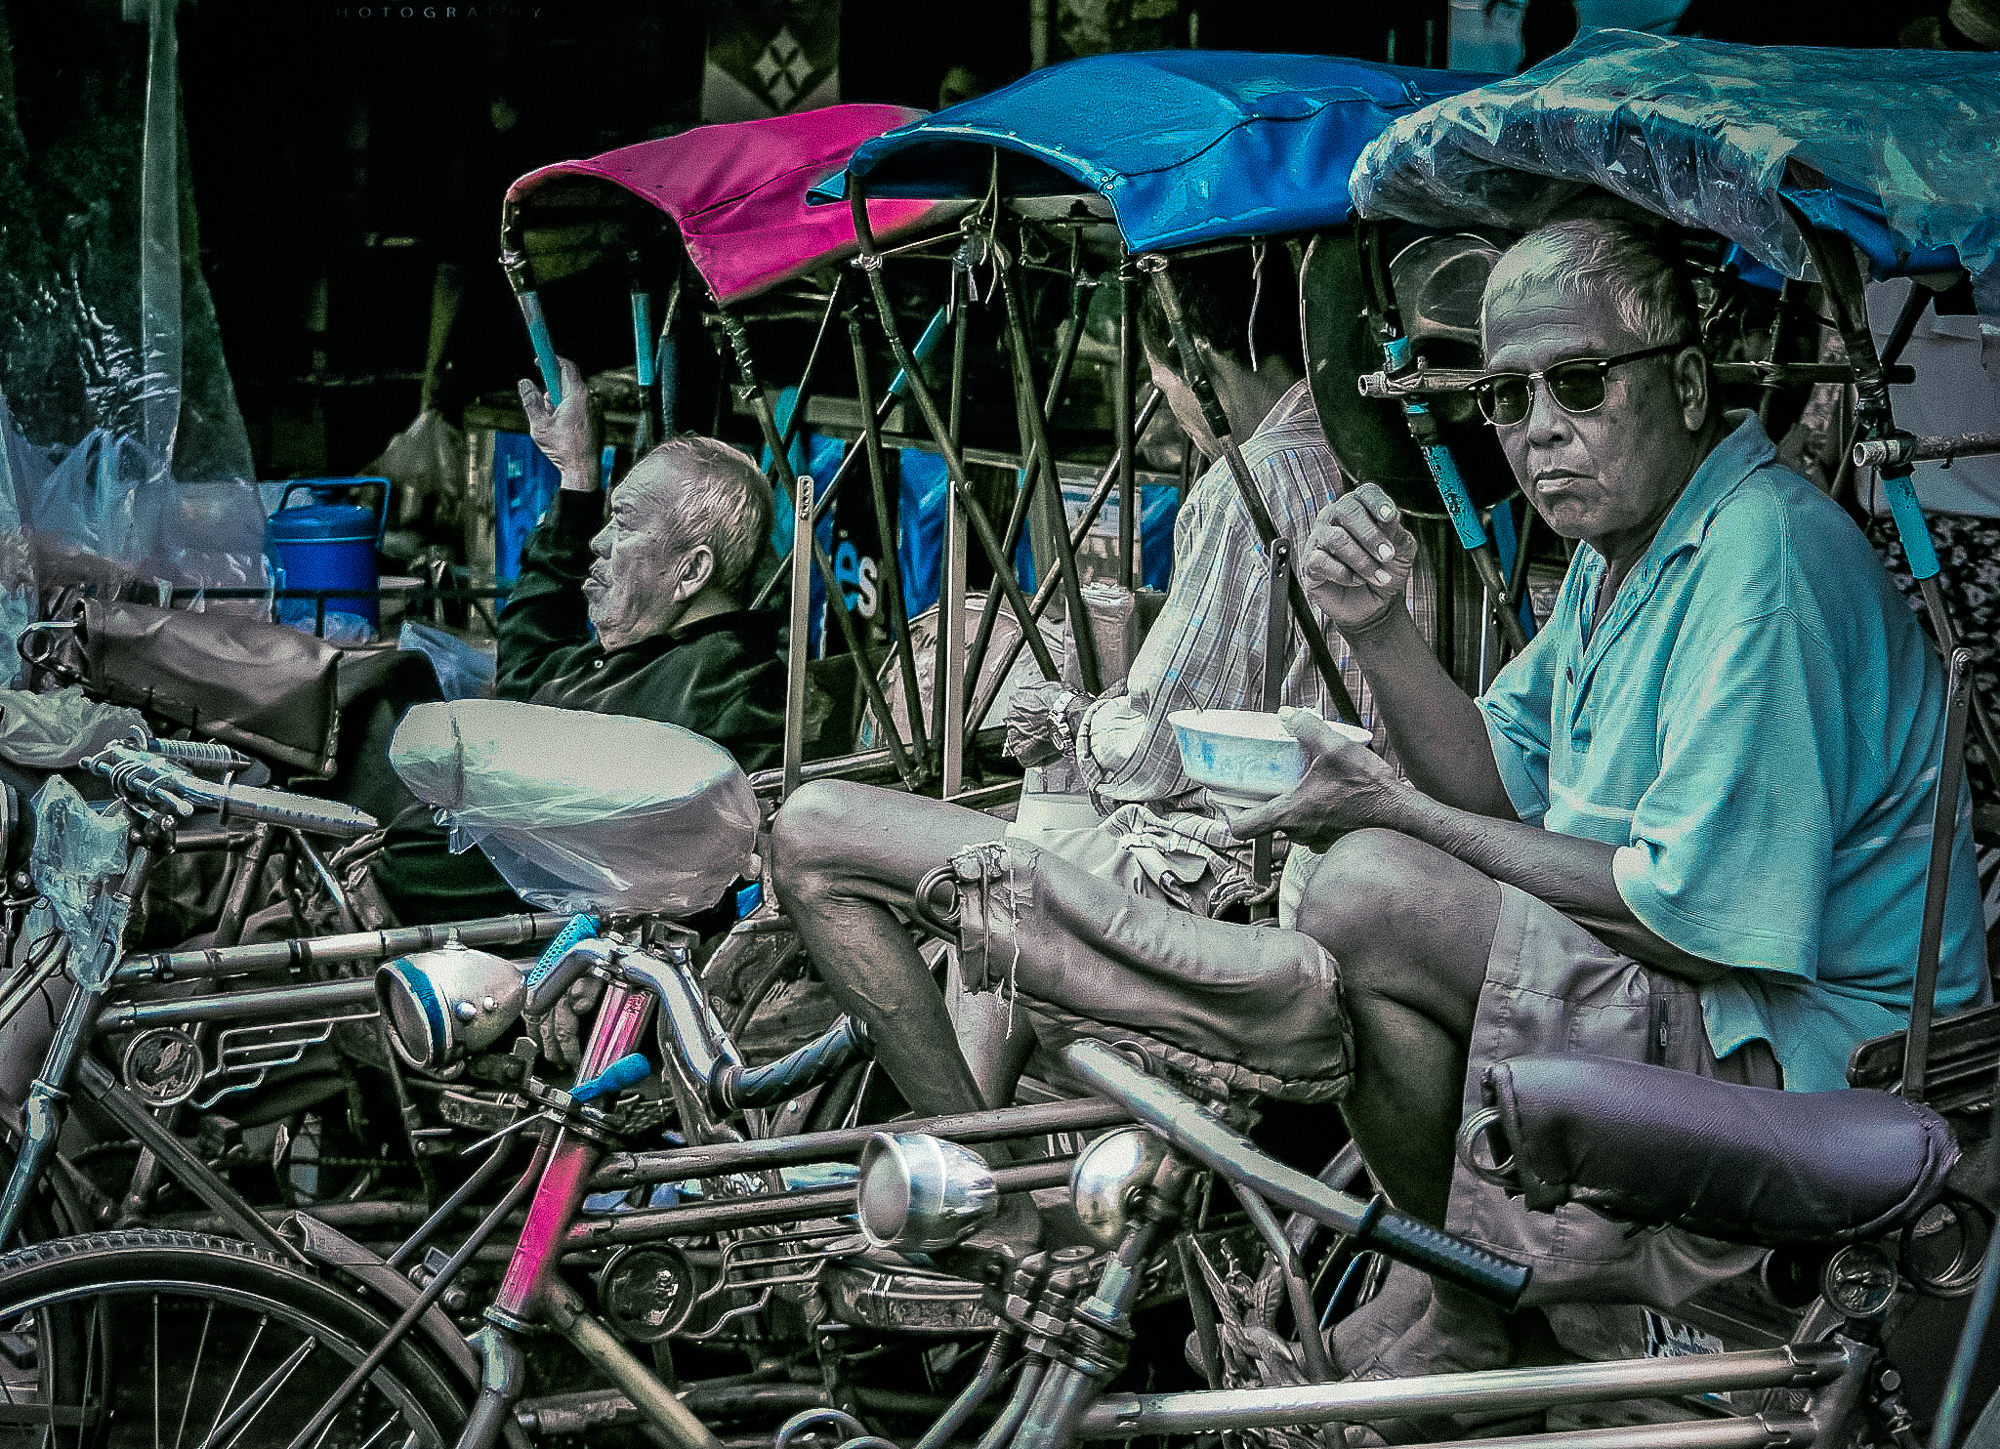 58147G - Cycle Rickshaws - Bangkok